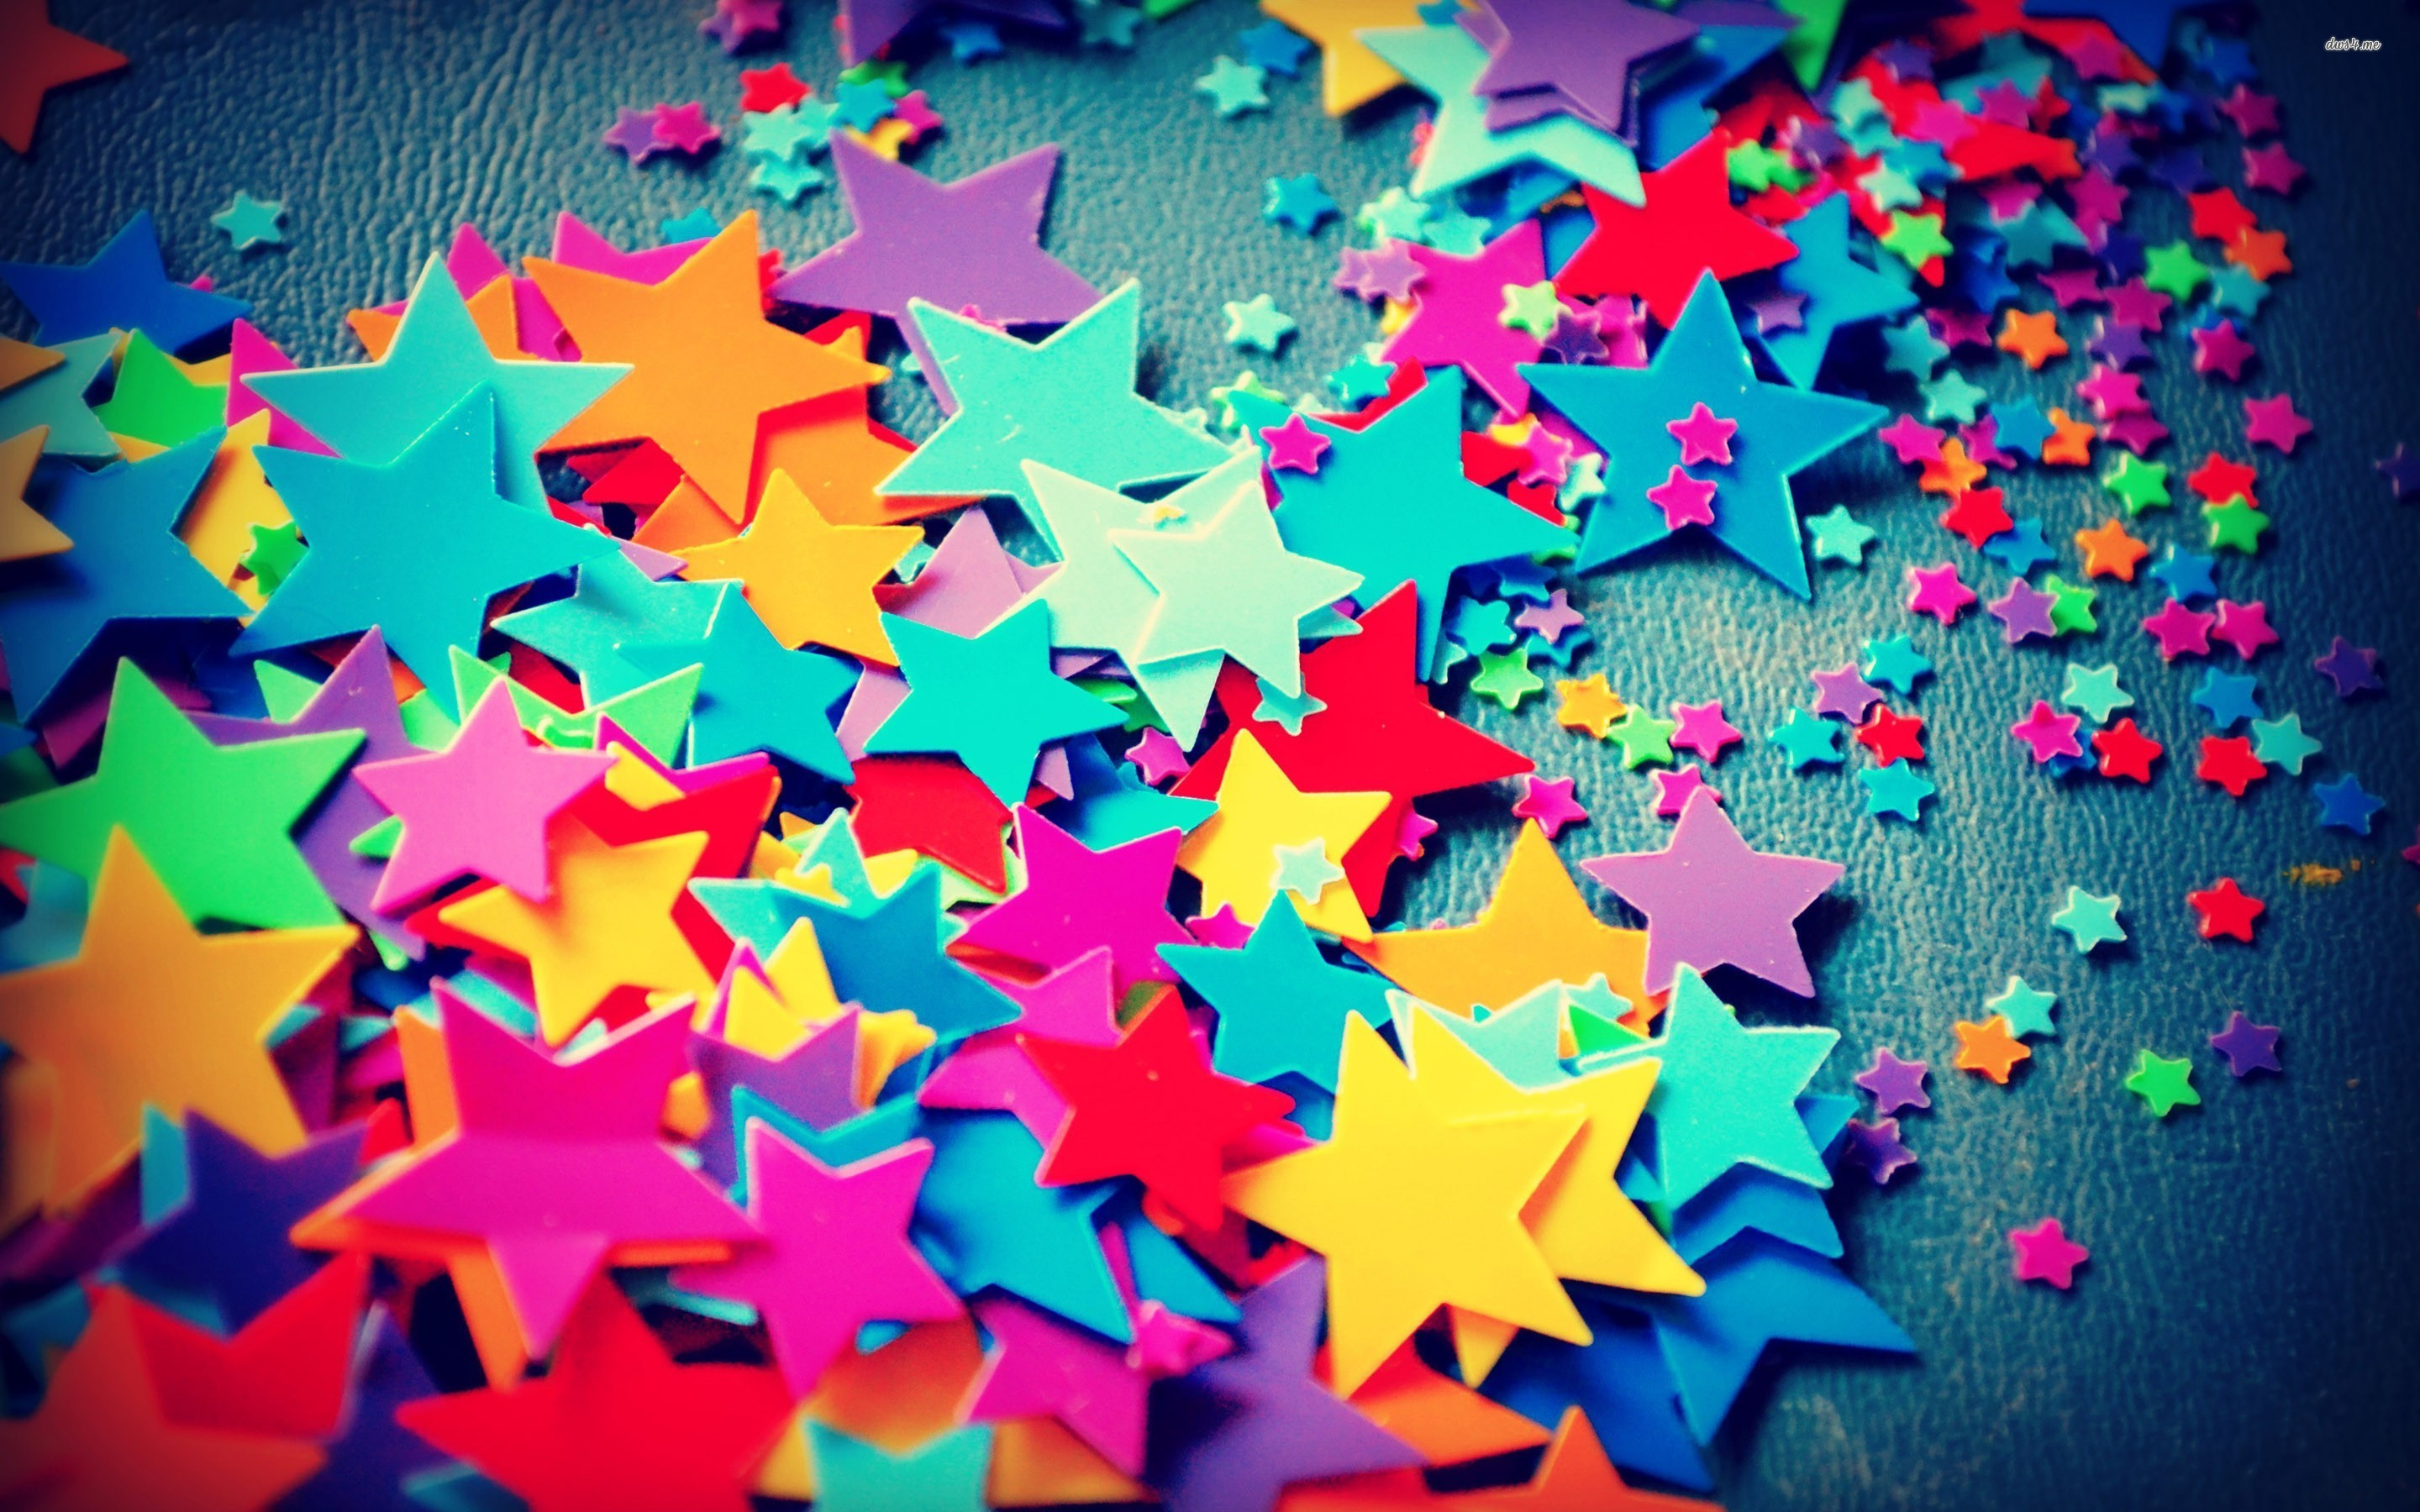 backgrounds for colorful star backgrounds | www.8backgrounds